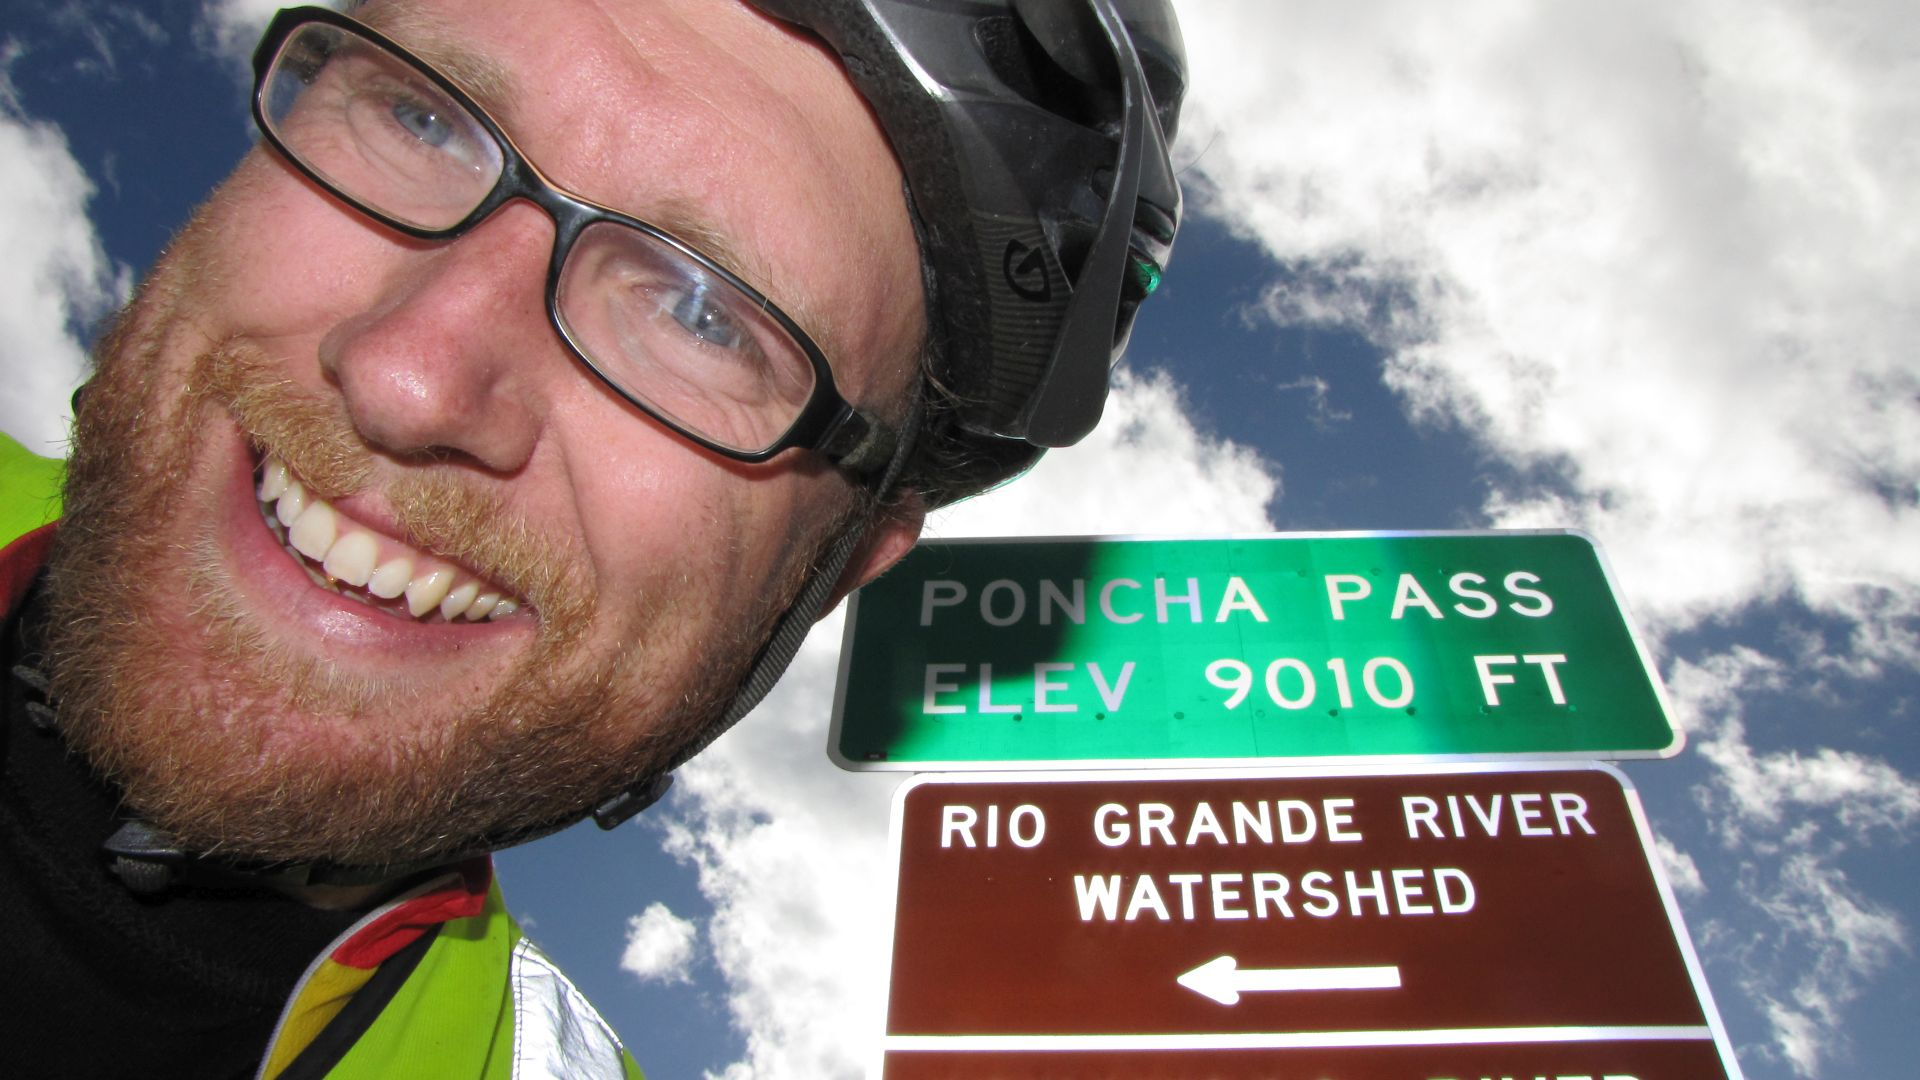 Poncha Pass, CO, USA - the watershed of the might Rio Grande